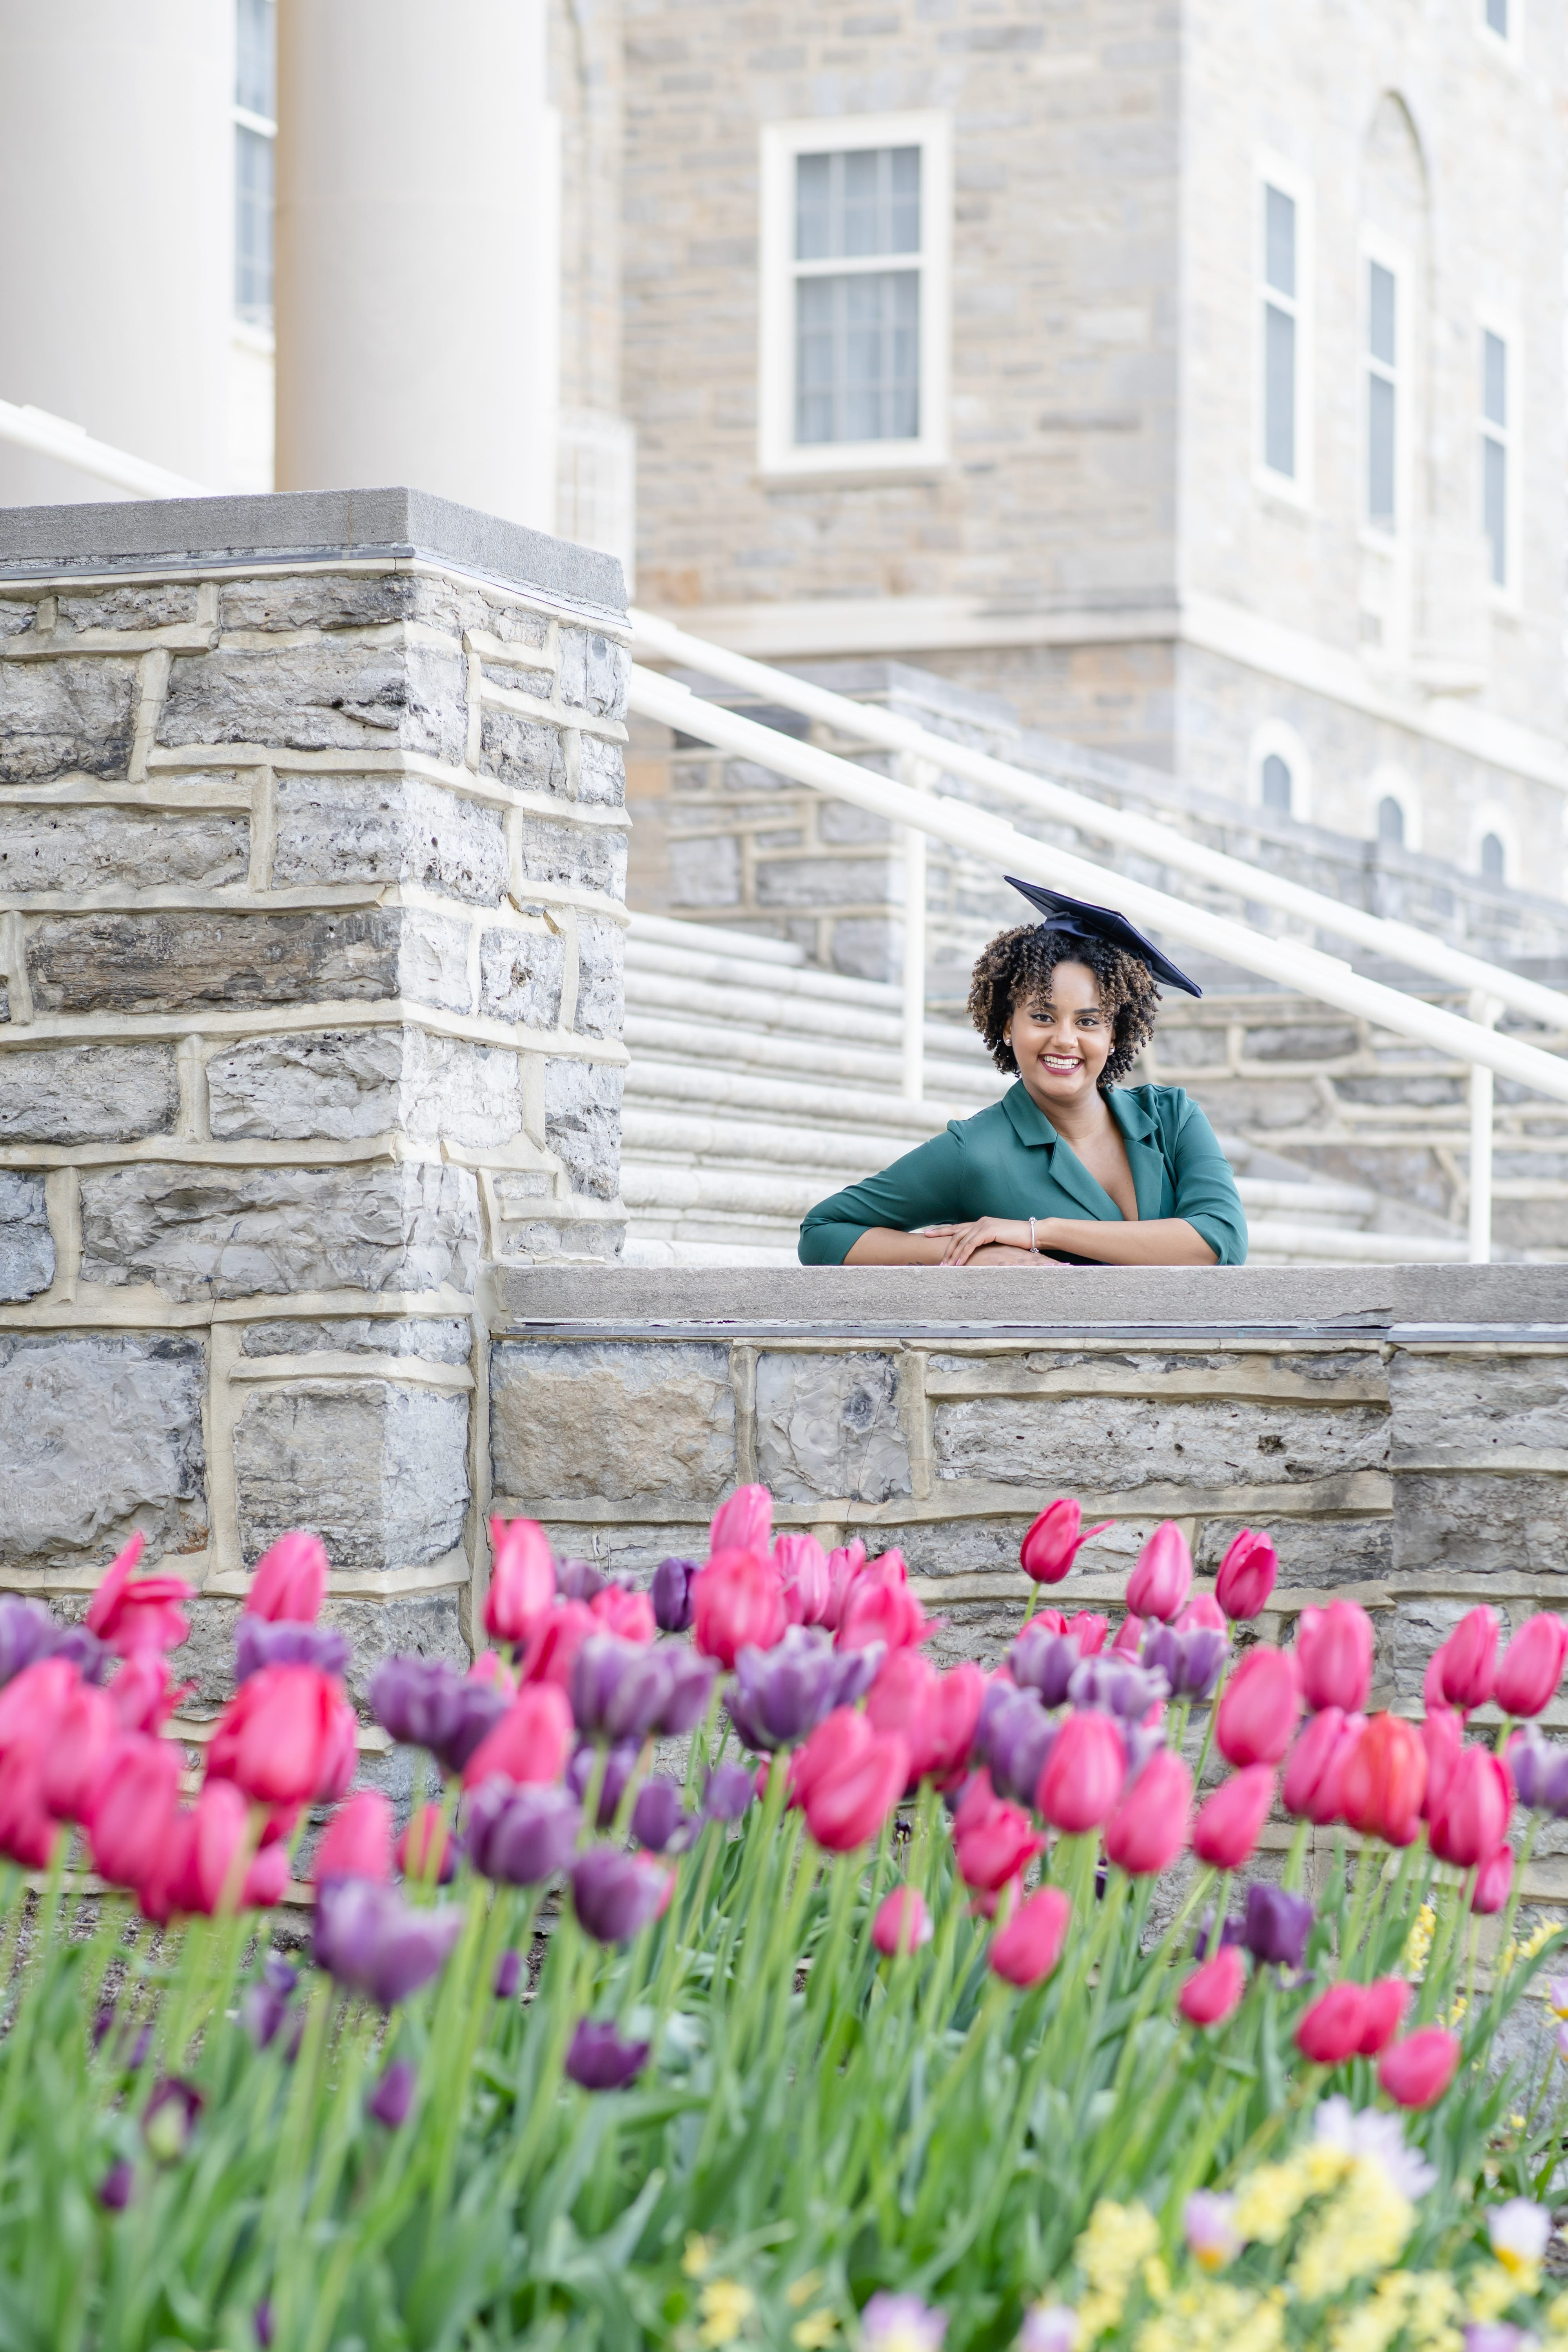 Class of 2020 Penn State graduate at Old Main with beautiful tulips during spring